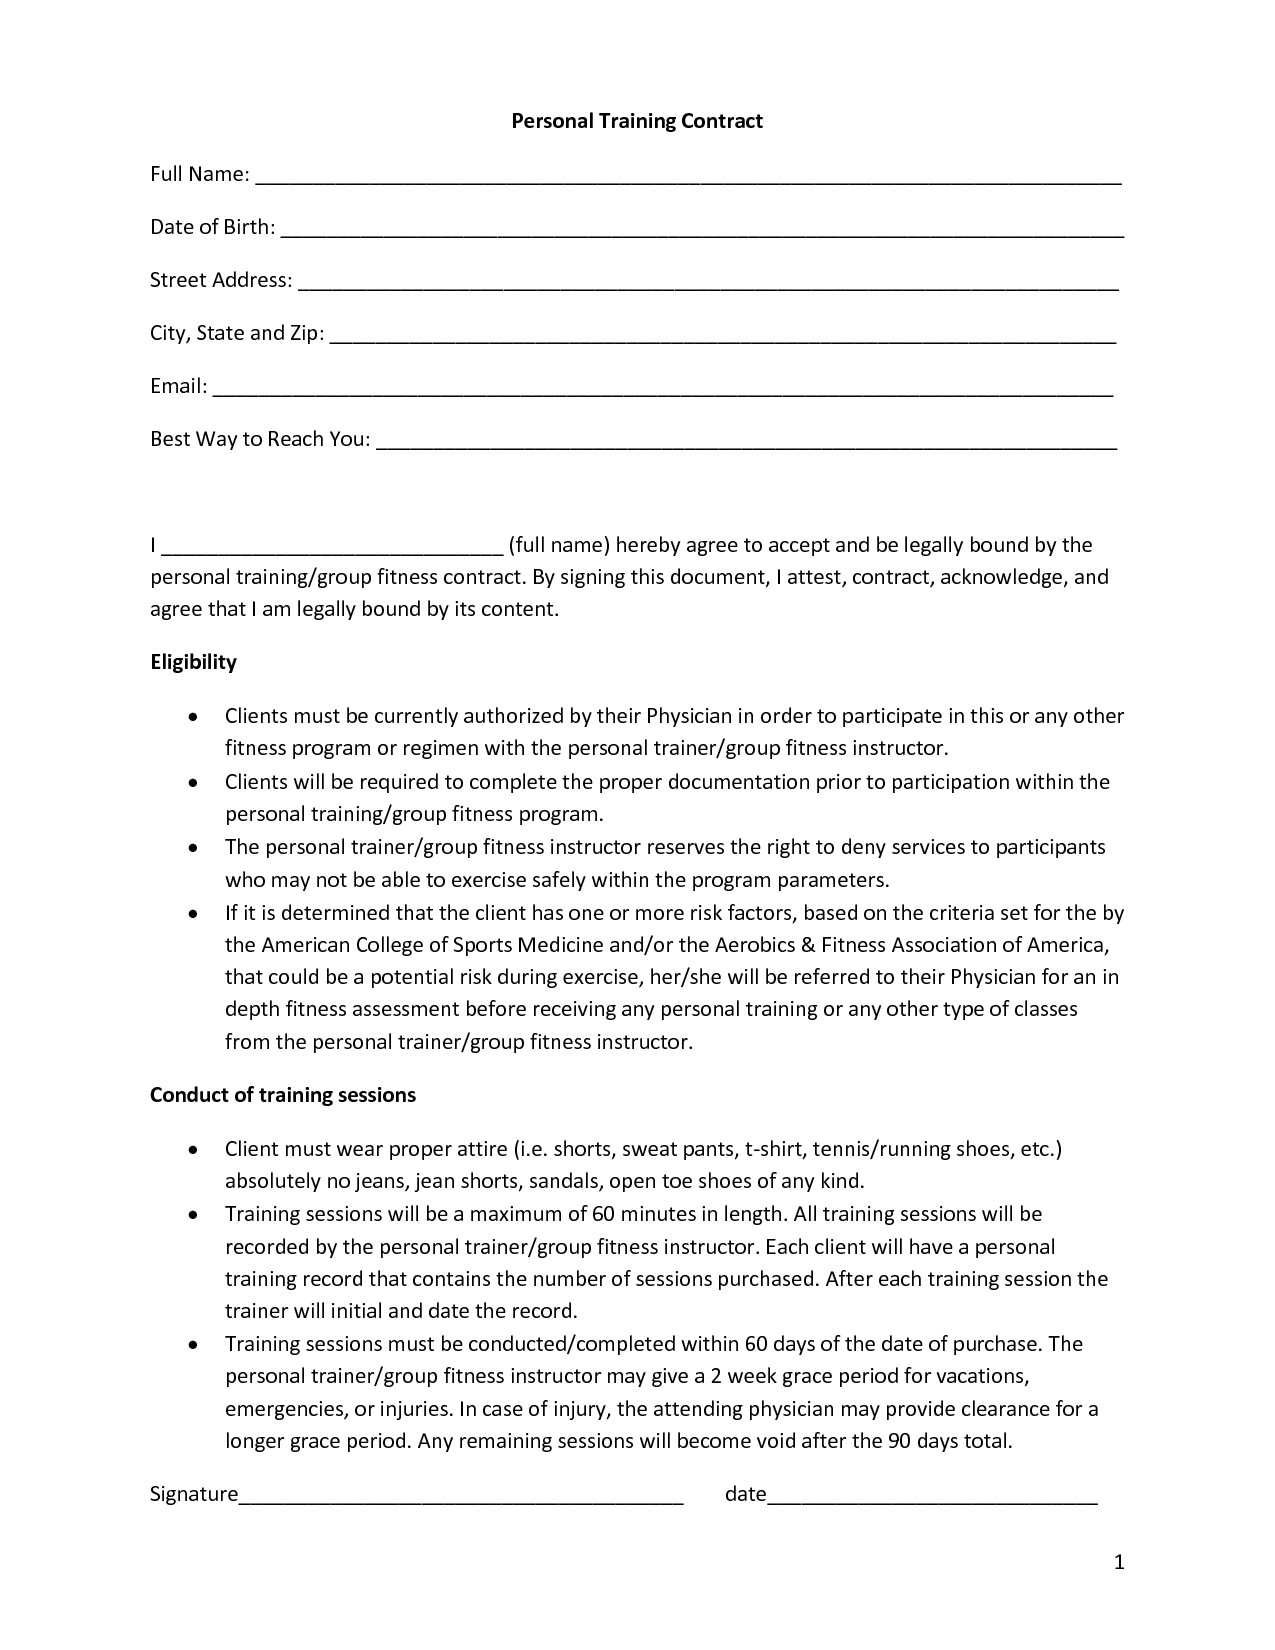 personal training contract templates five 1 fitness pinterest personal training contract template